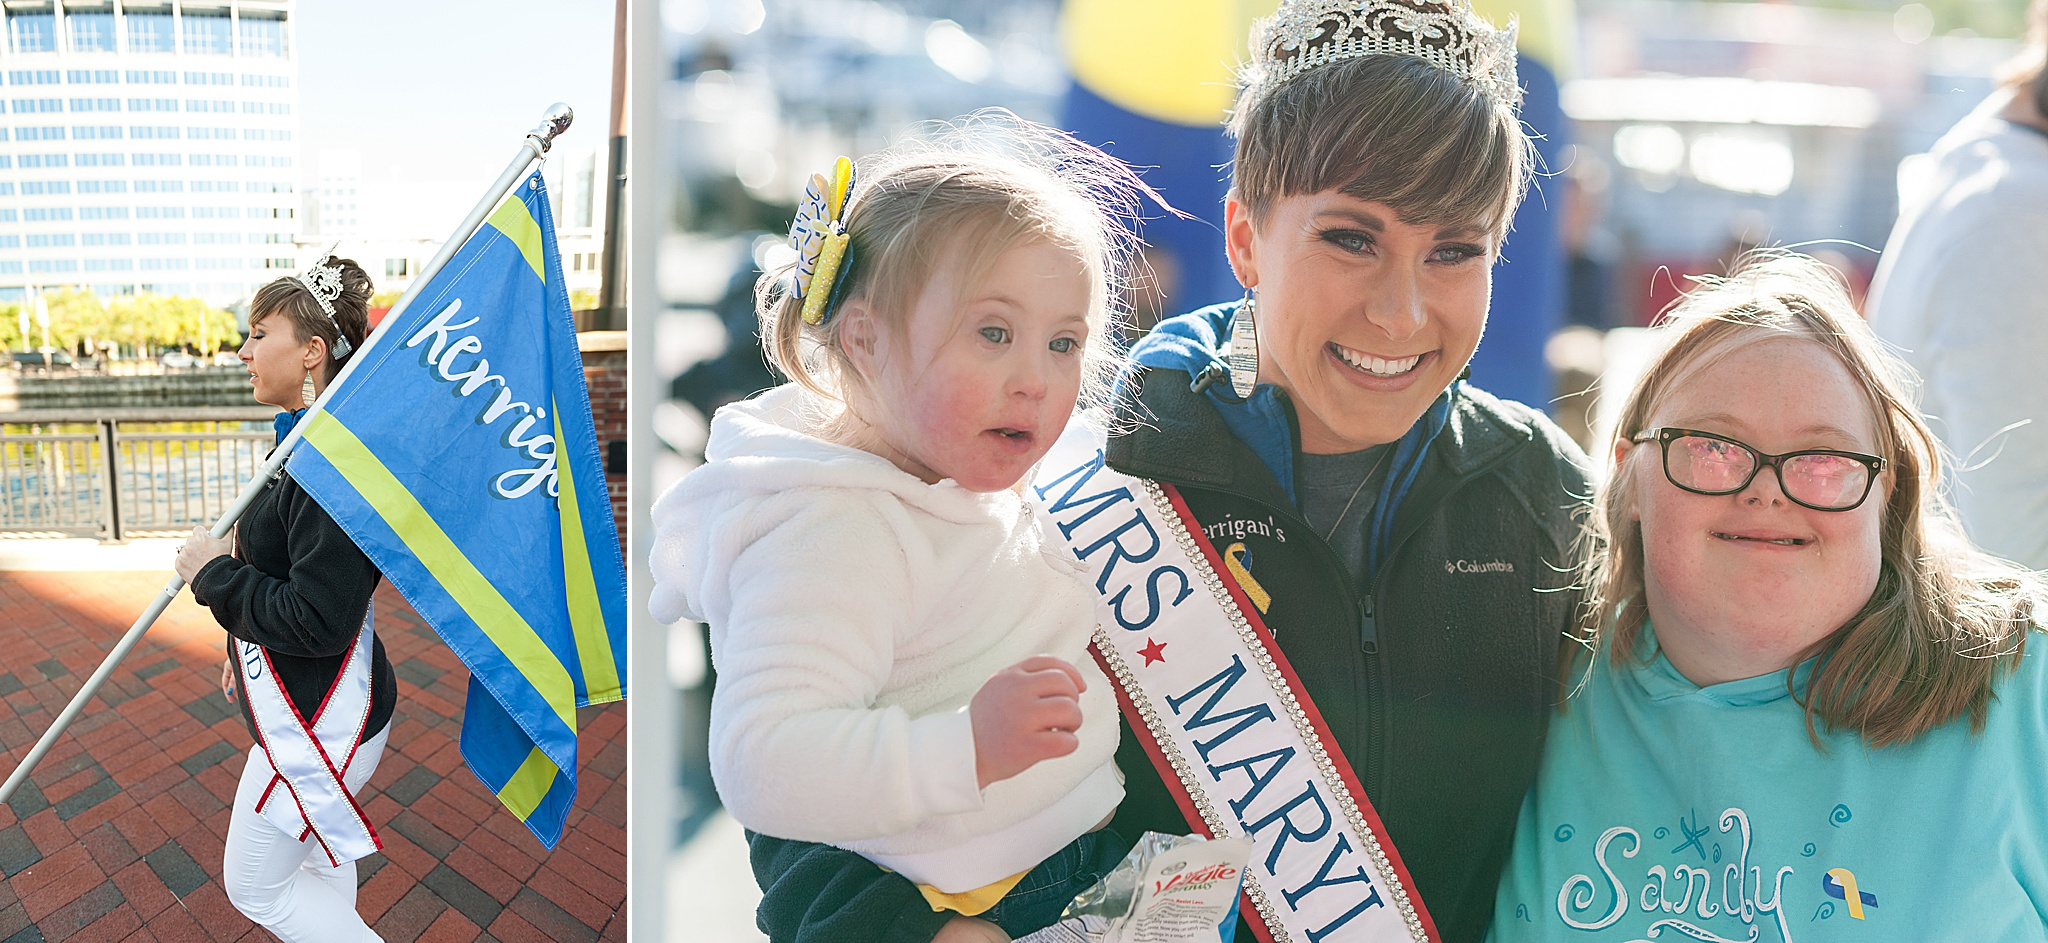 Wendy Zook Photography | Mrs Maryland at Baltimore Buddy Walk, Baltimore MD photographer, Down Syndrome Awareness, NDSS, Buddy Walk, Down Syndrome